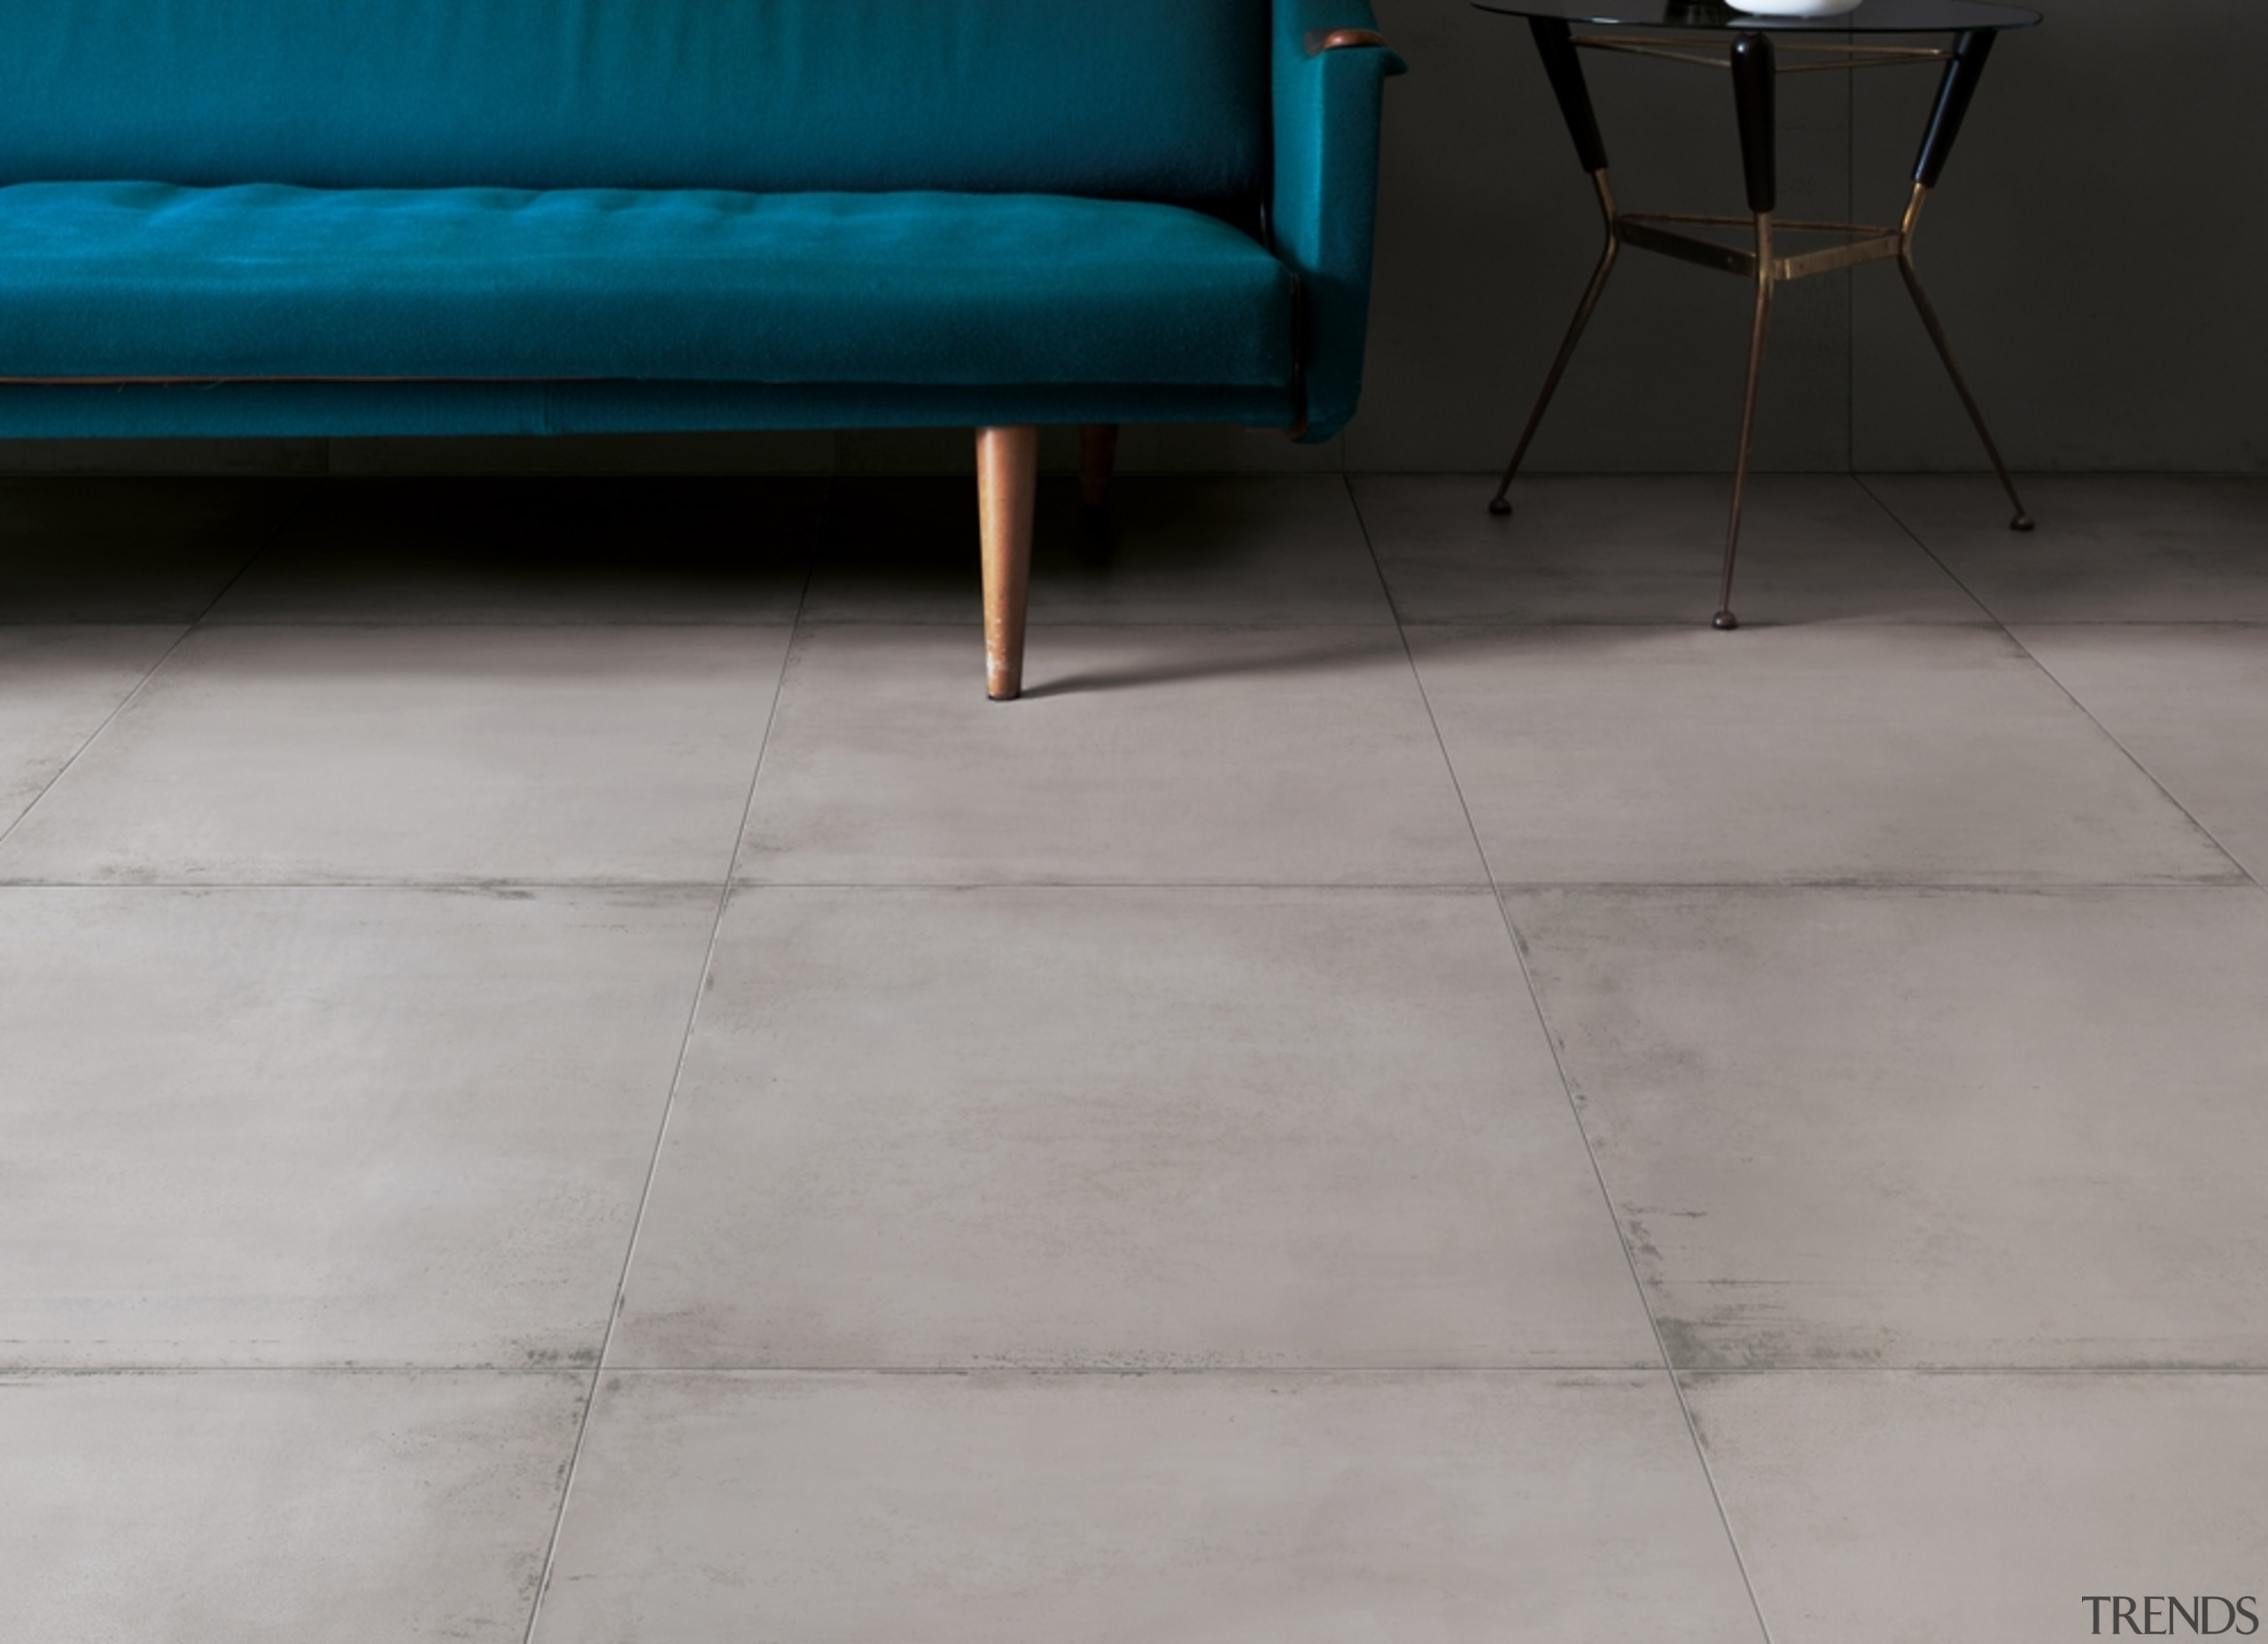 Salento adds charm and personality to a variety angle, chair, floor, flooring, hardwood, laminate flooring, line, tile, wood, gray